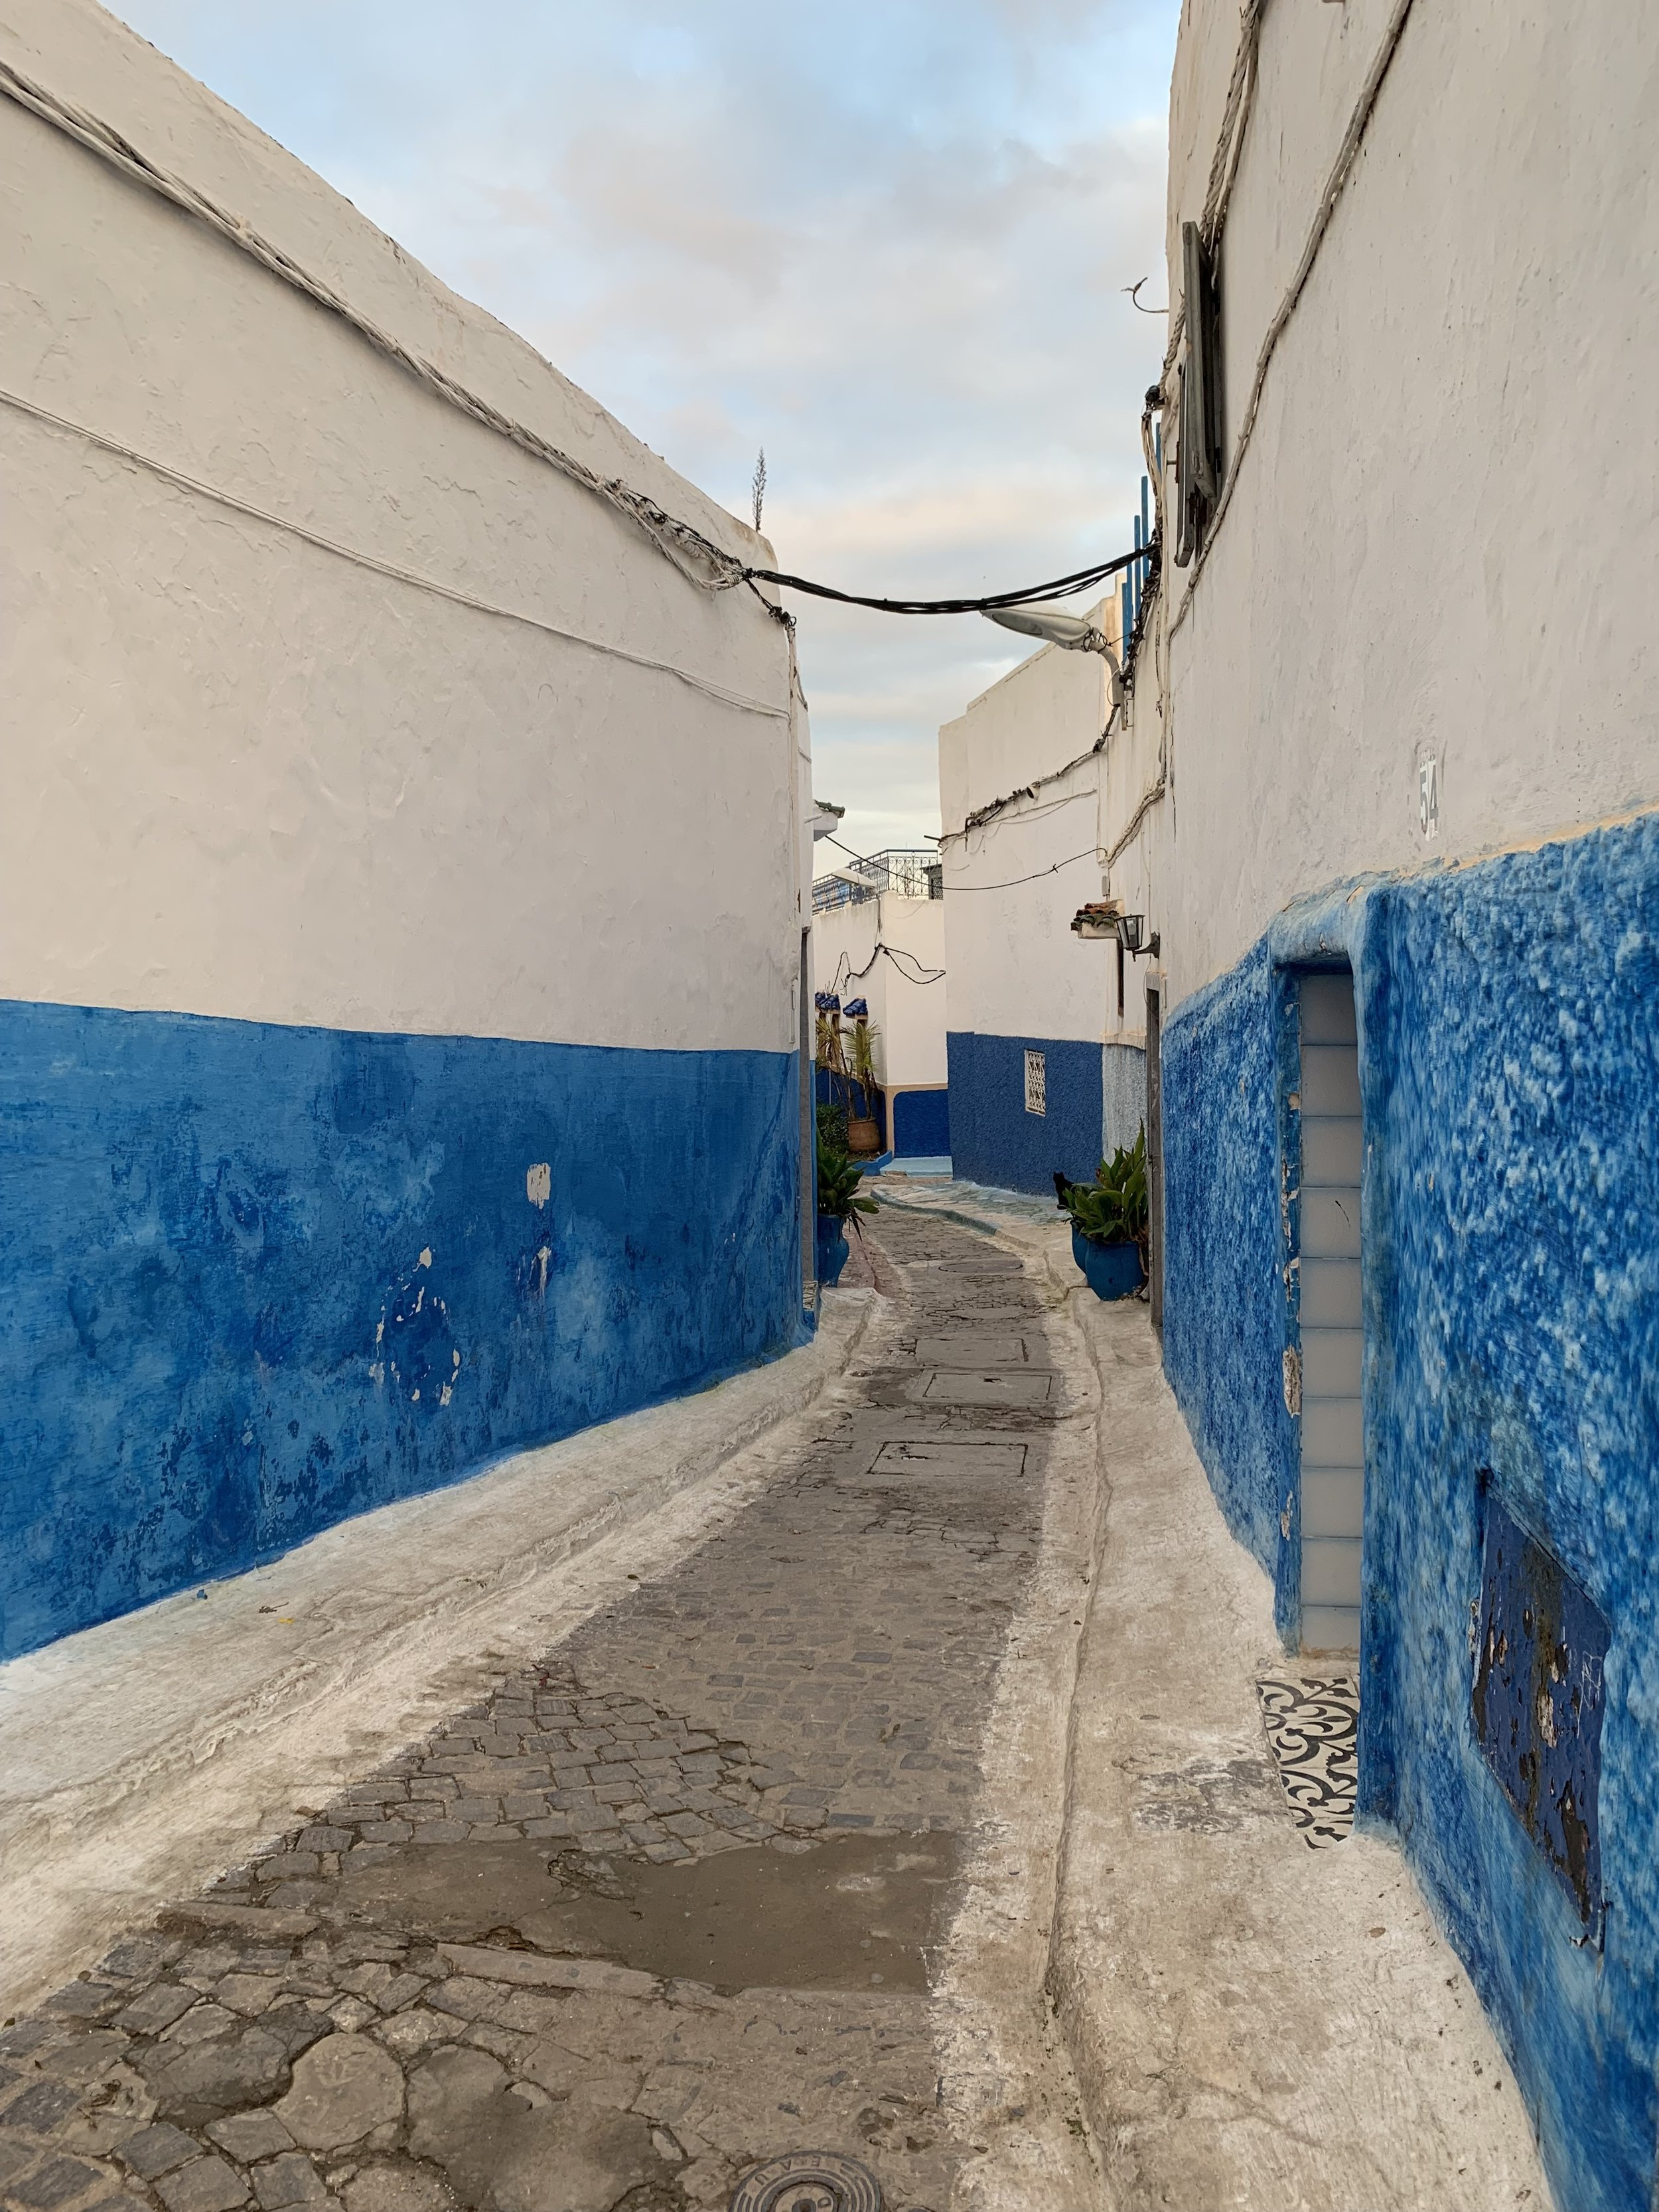 The winding blue streets and alleyways within the Kasbah echo the style of the famous blue city of Morocco, Chefchaouen. Photo Credit: M. Aboko-Cole, Spring 2019.